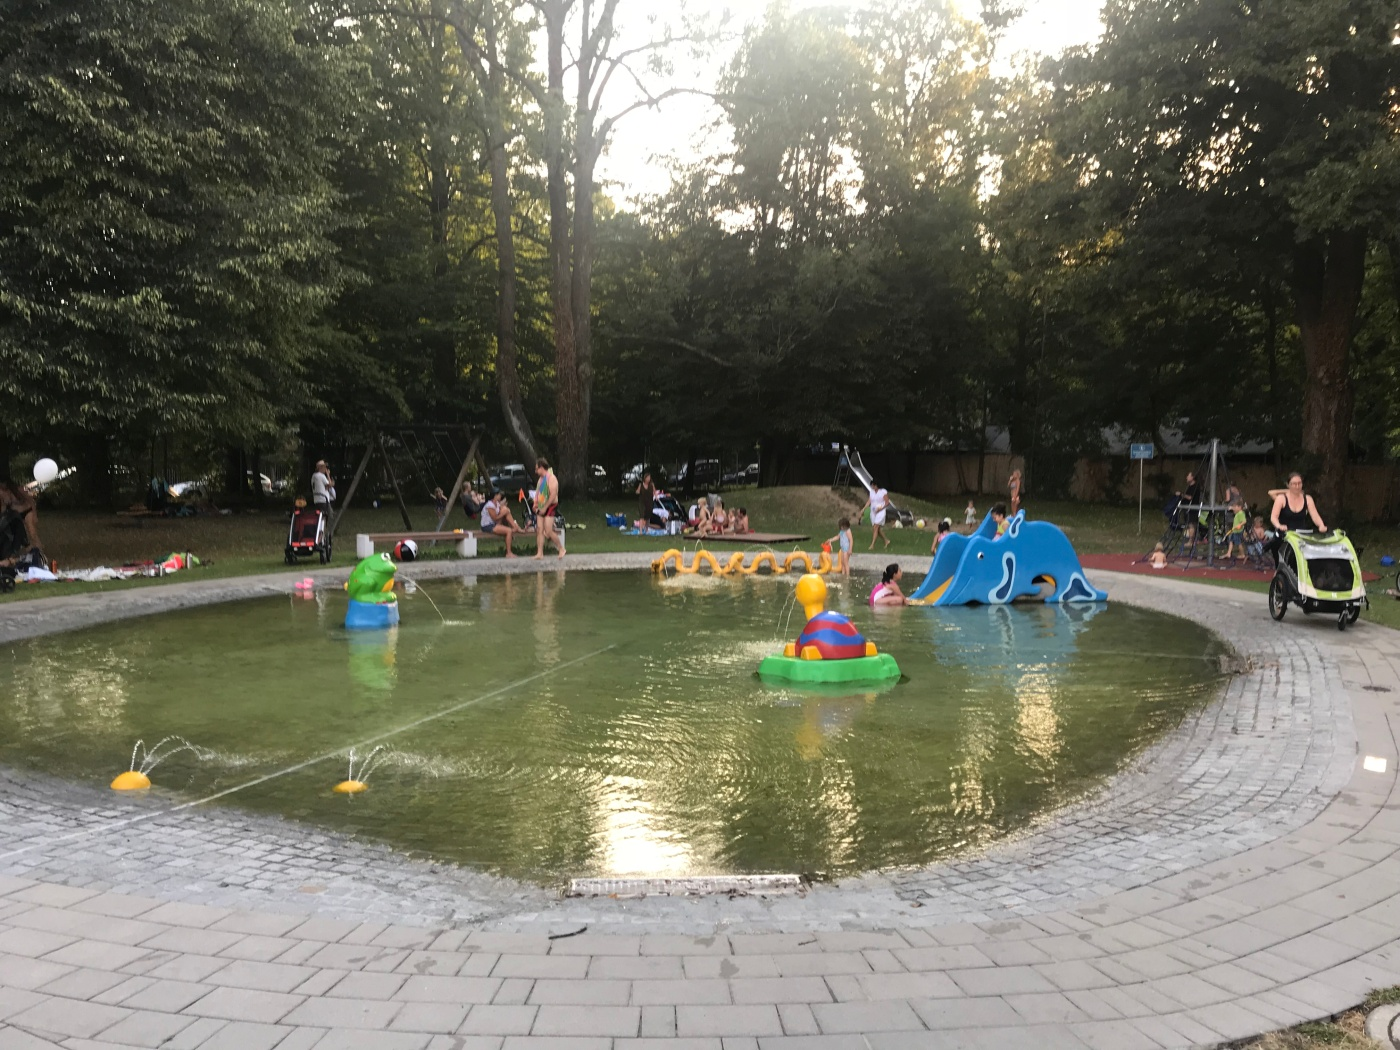 Kiddie Pool at Maria Einsiedel Bad - Munich - Germany - Wahlmünchnerin